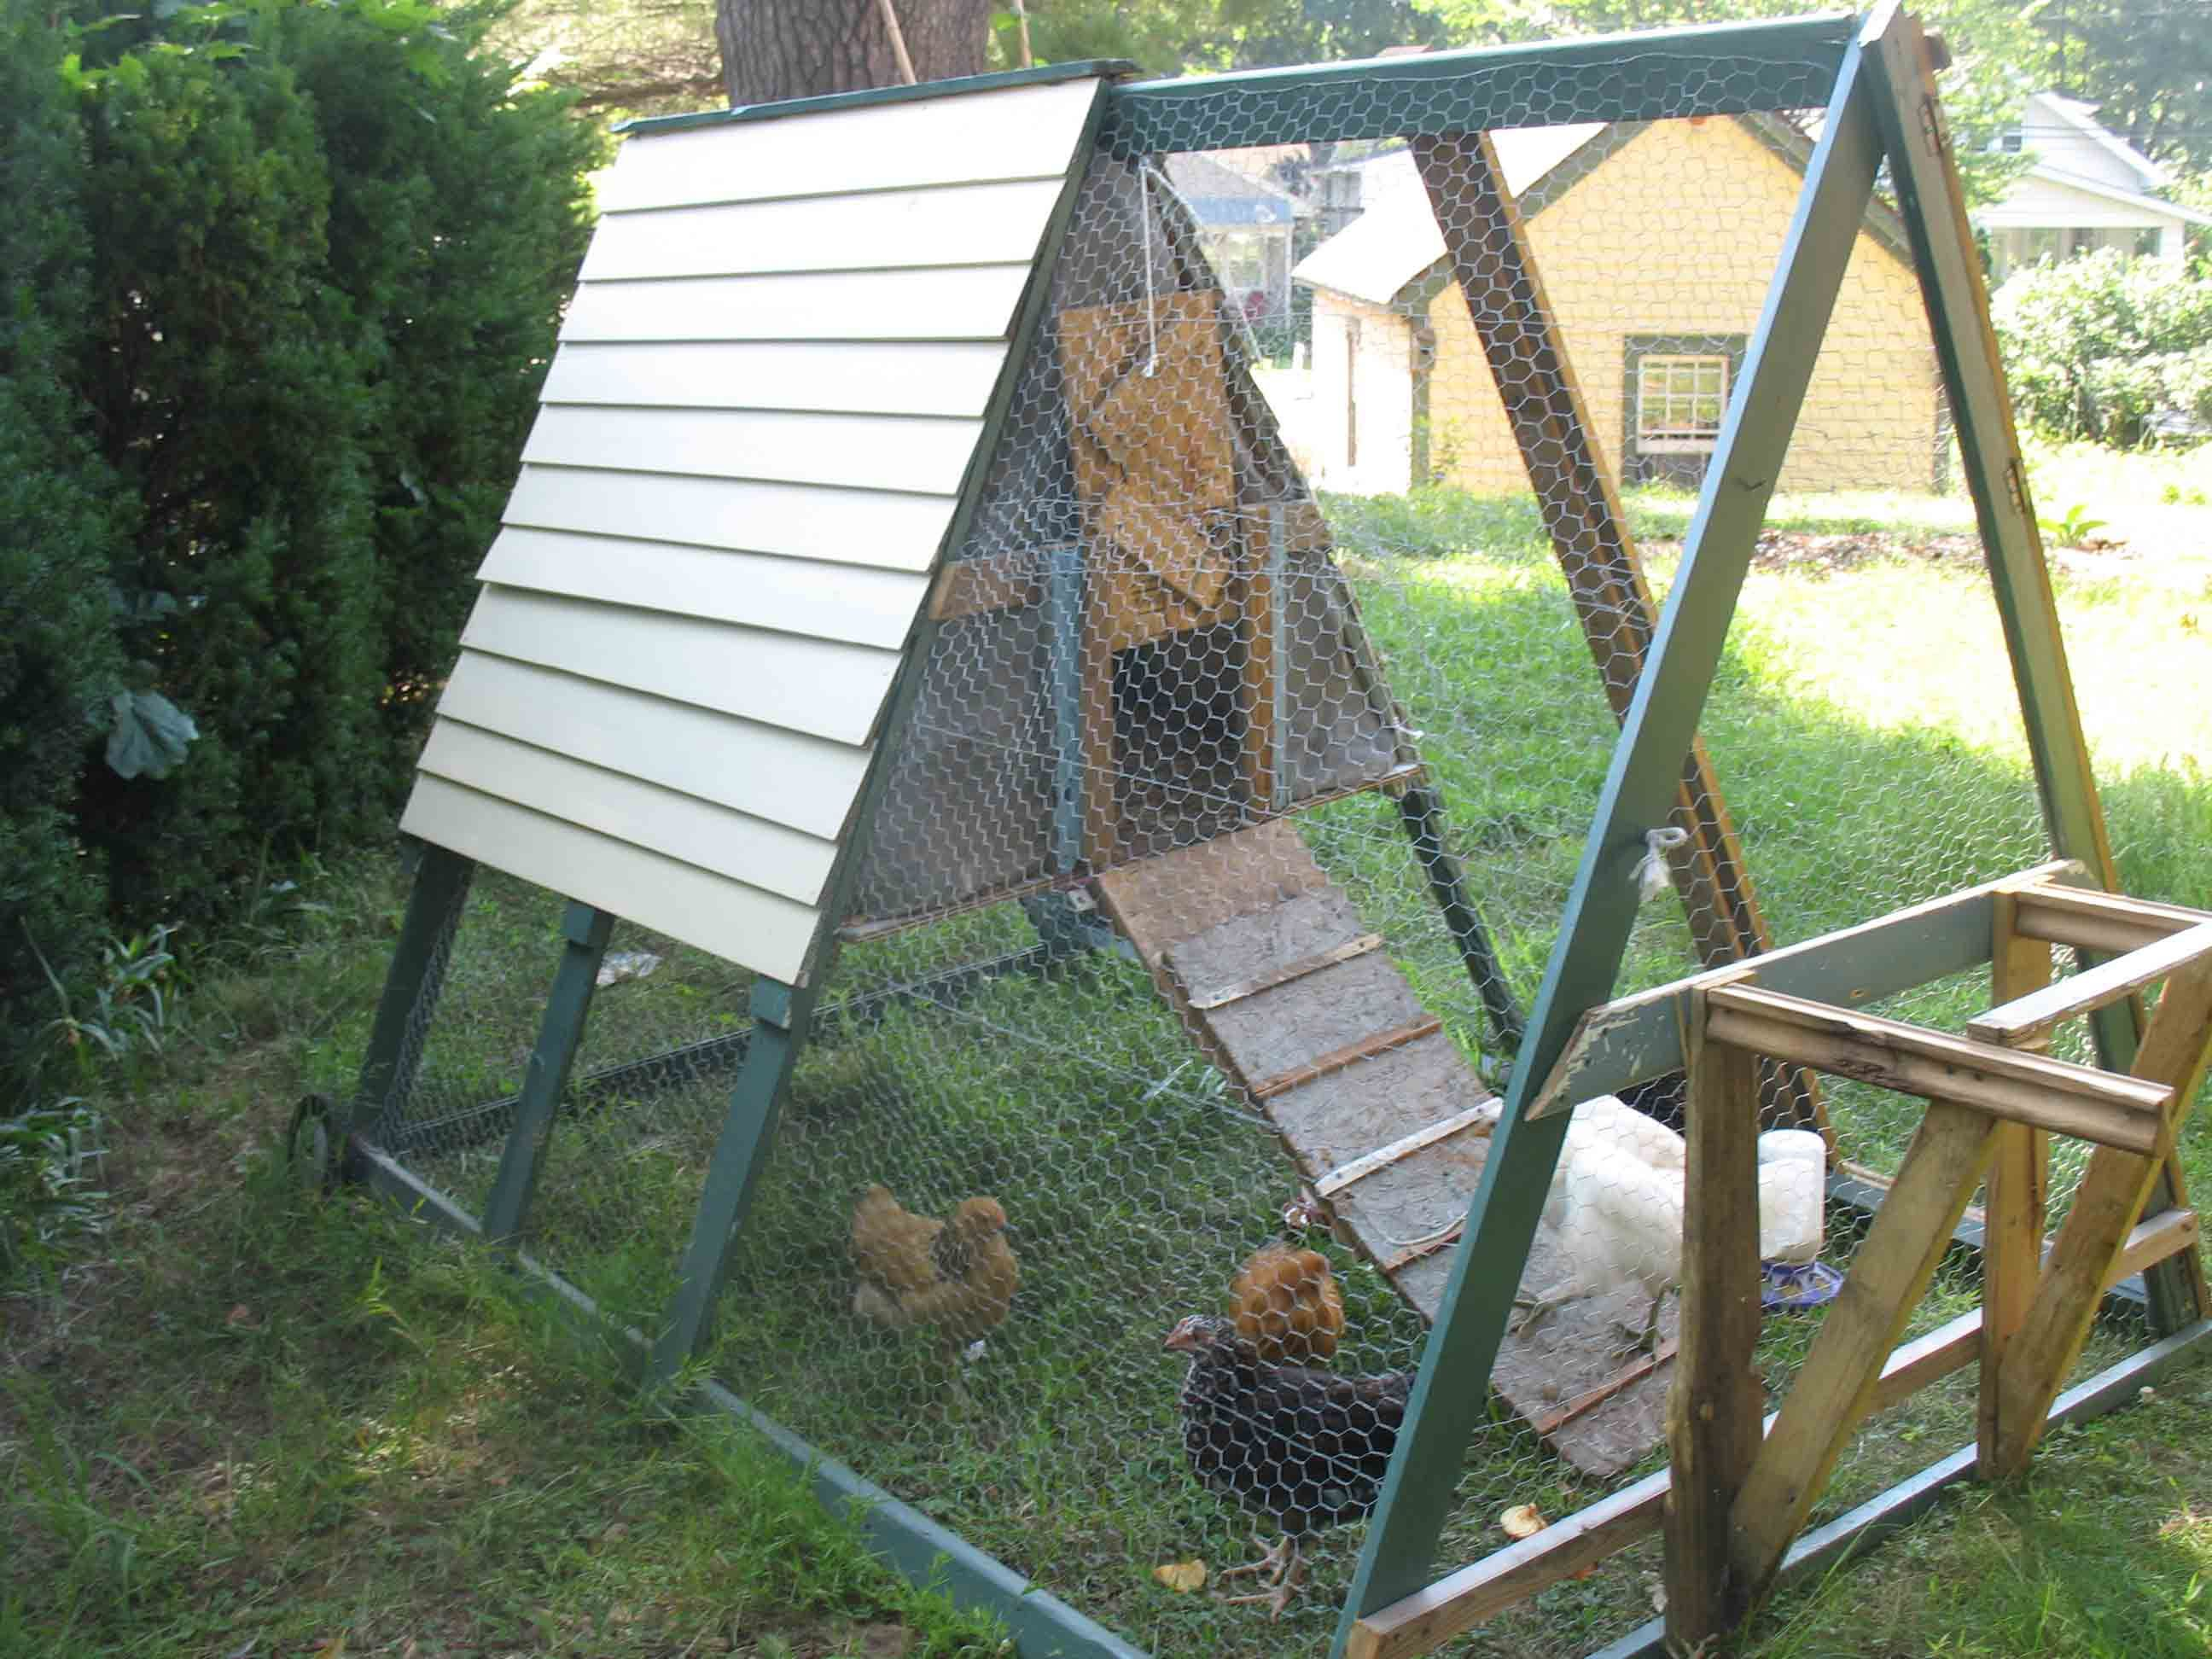 this is a mobile chicken arc coop great for keeping chickens in